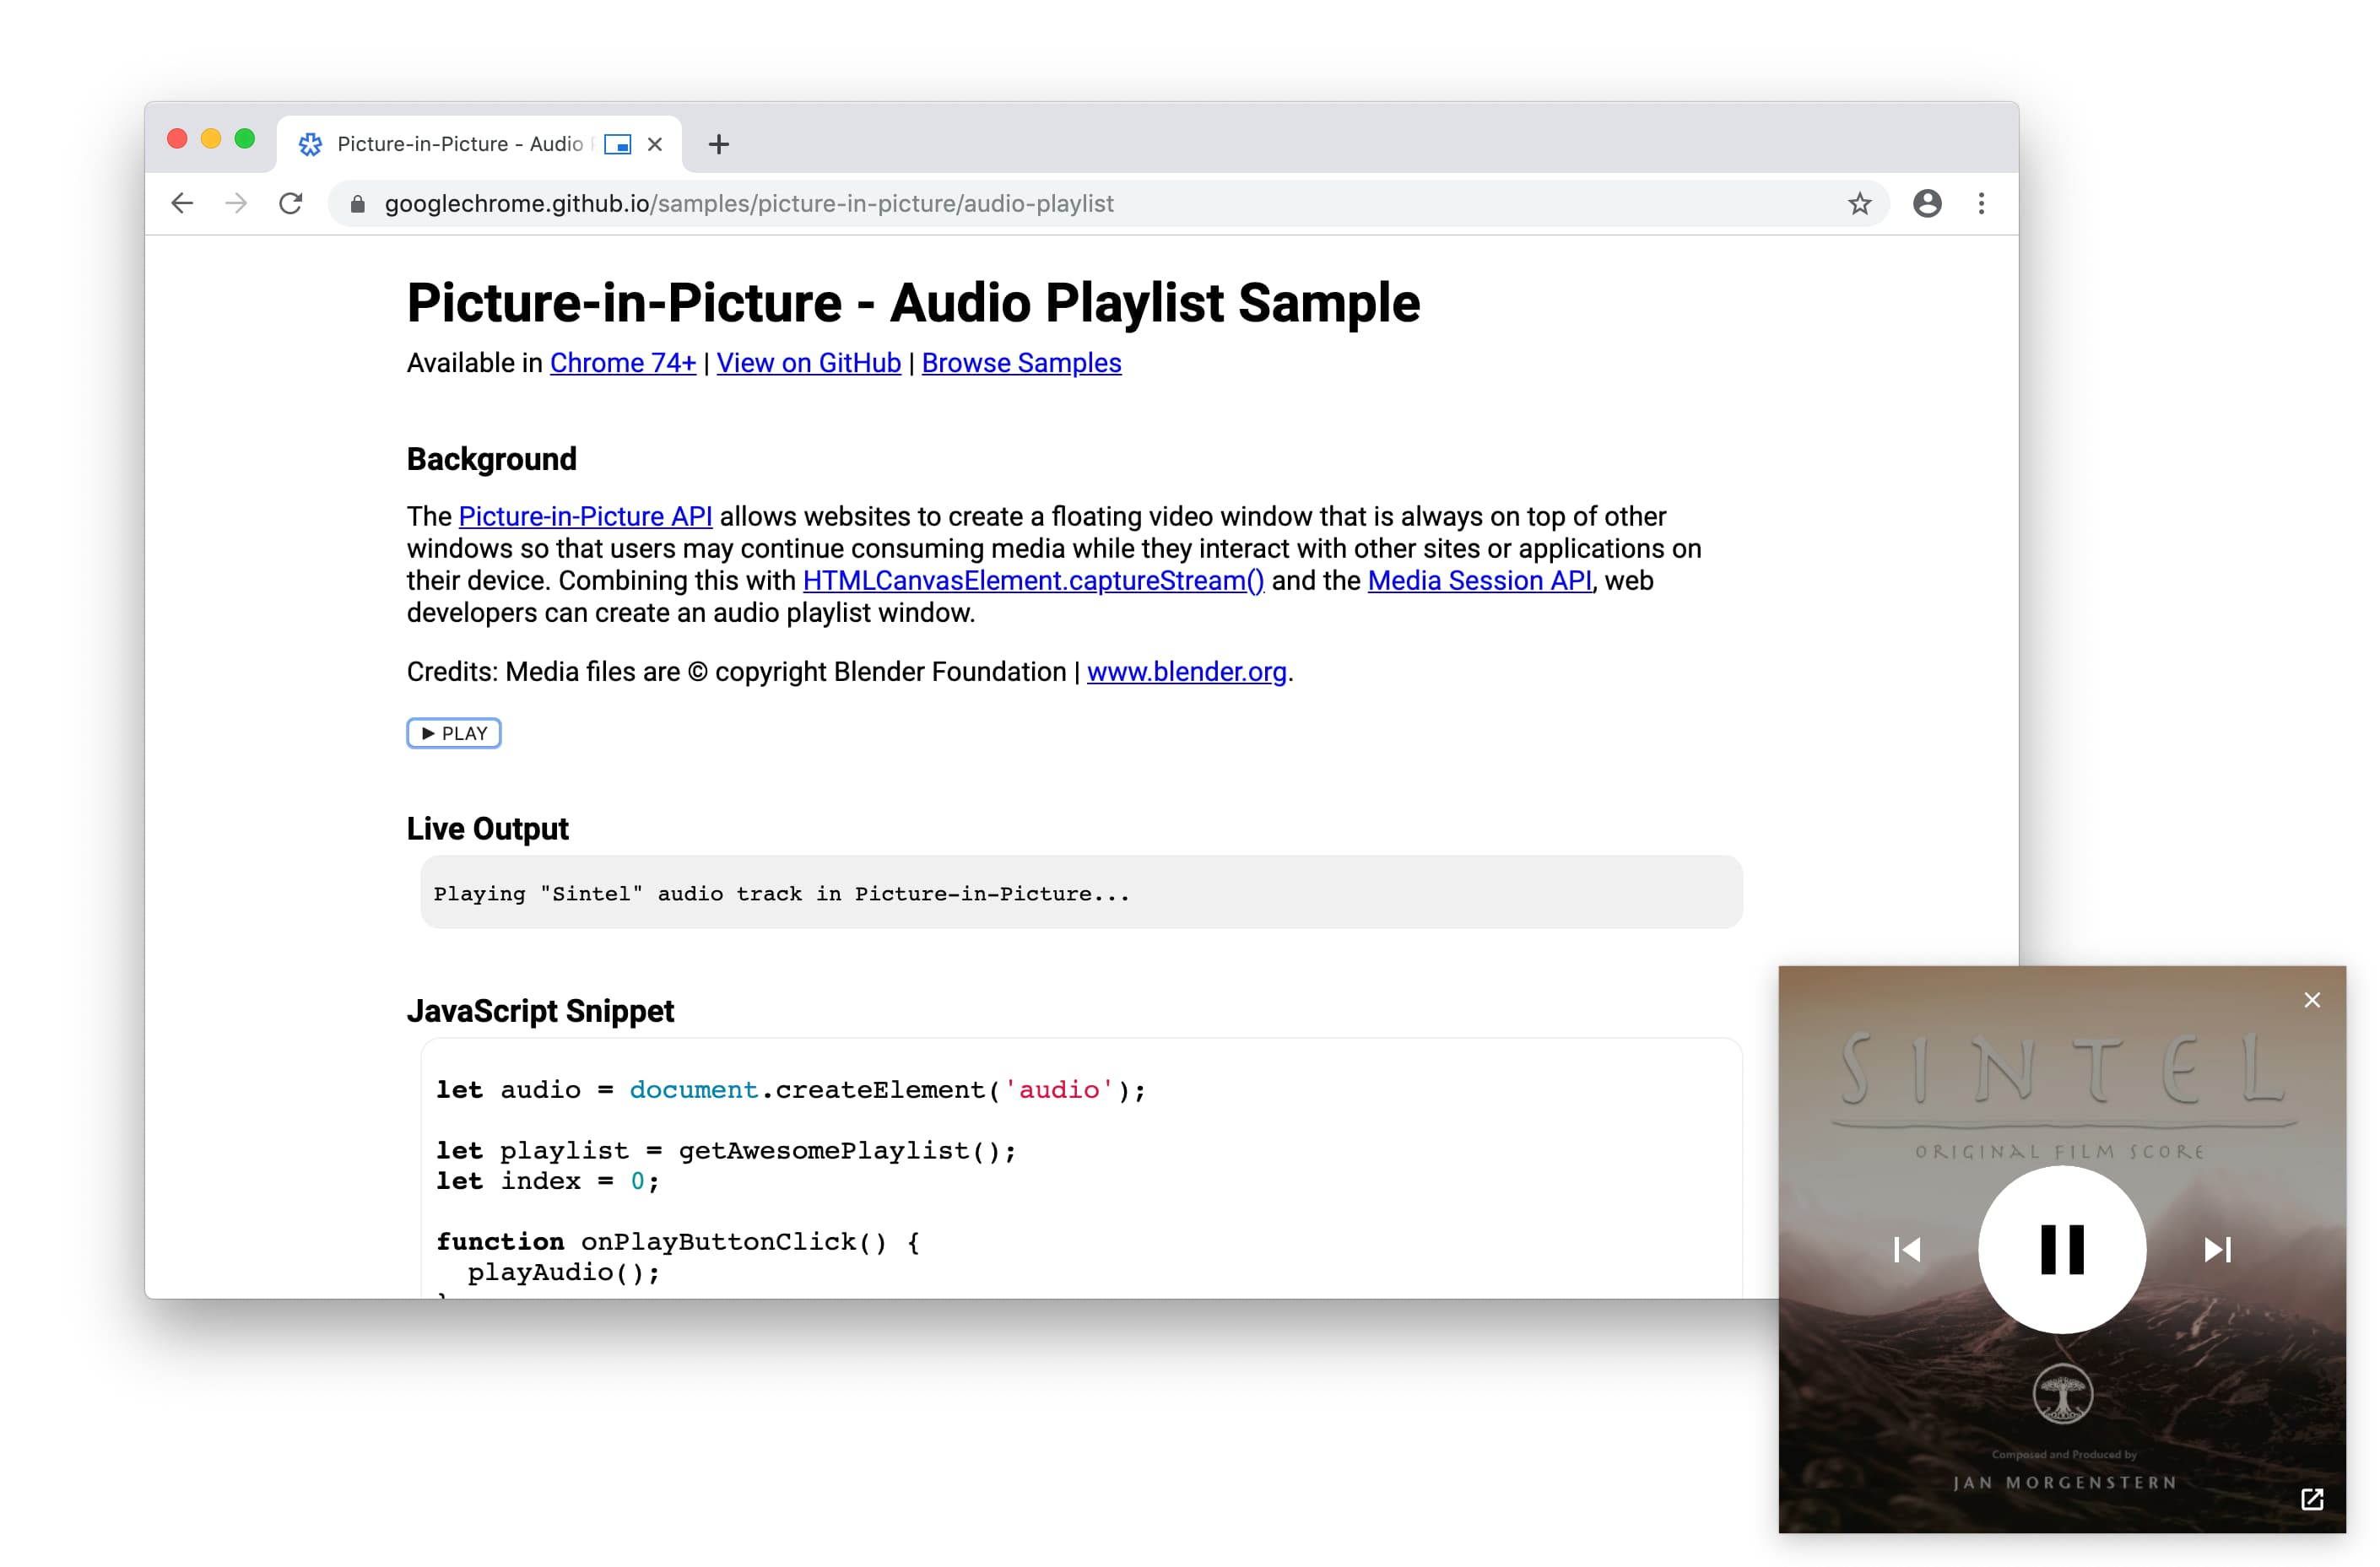 Audio playlist in a Picture-in-Picture window